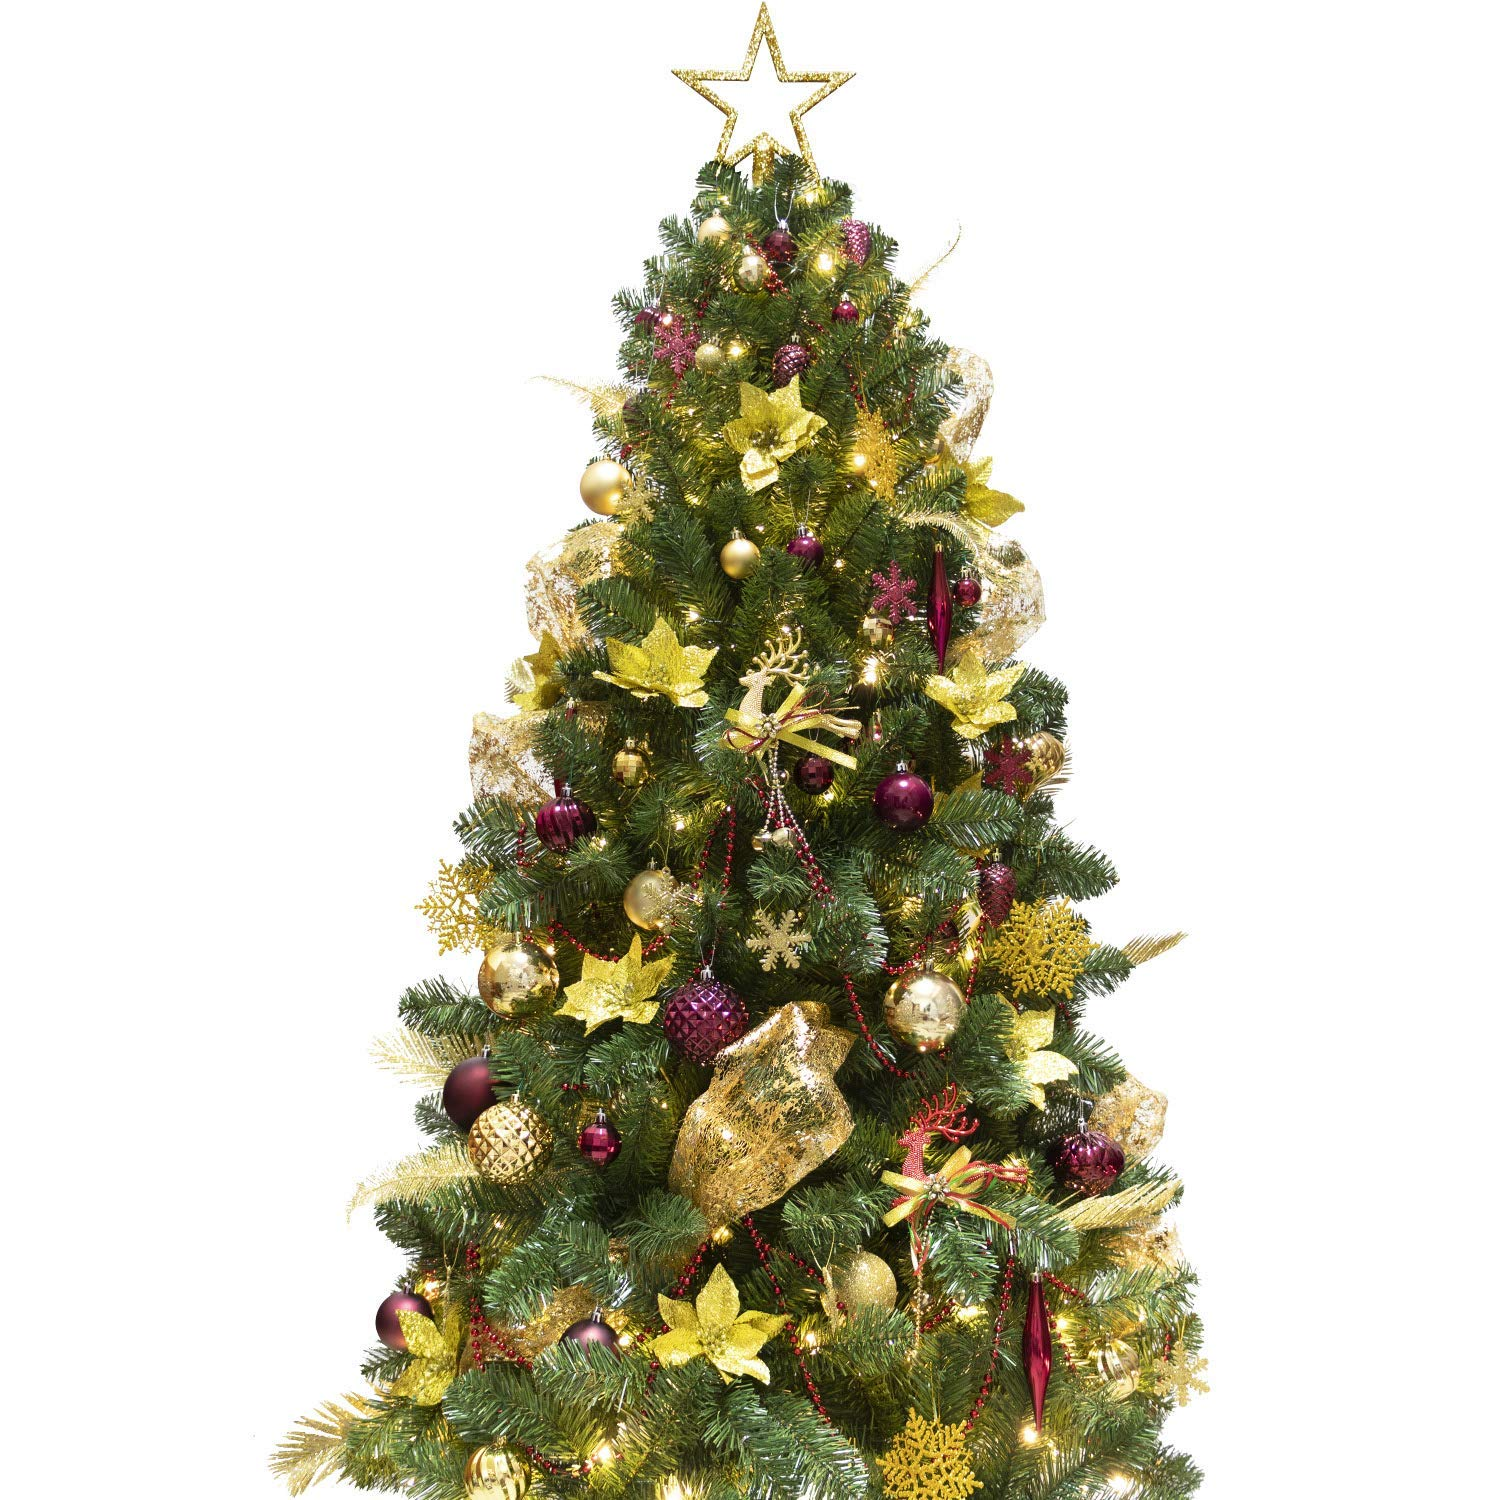 Review of KI Store Artificial Christmas Tree with Decoration Ornaments